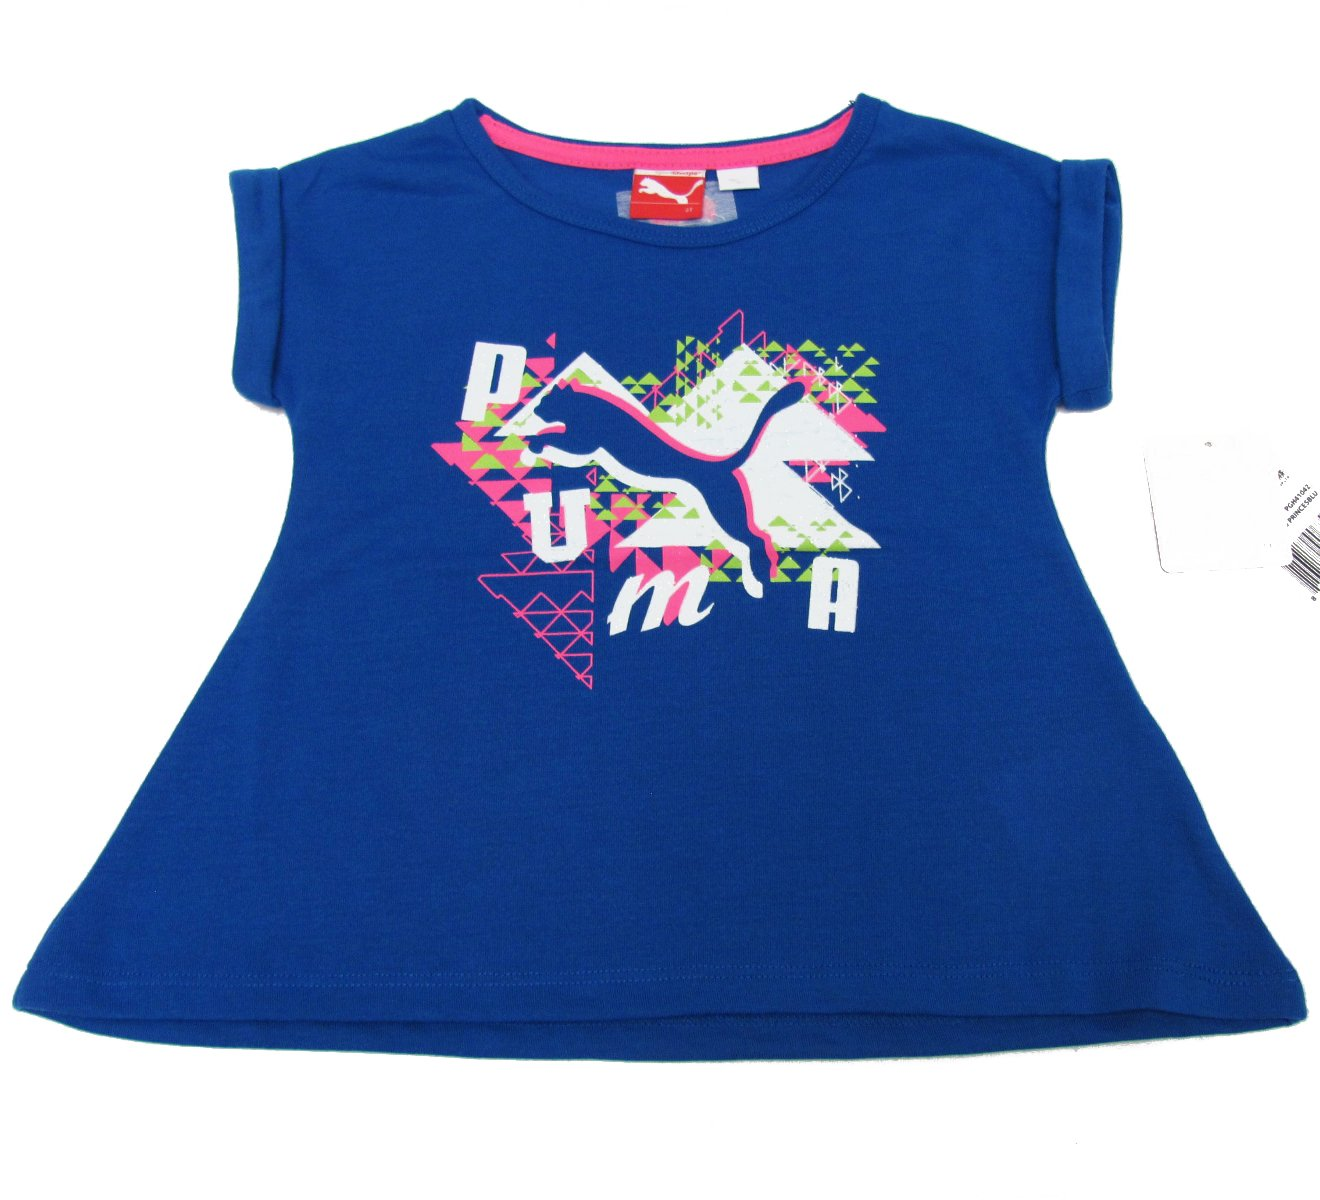 Puma Girls size 4 Blue T-shirt with Glitter Logo Short Sleeve Tee Shirt New